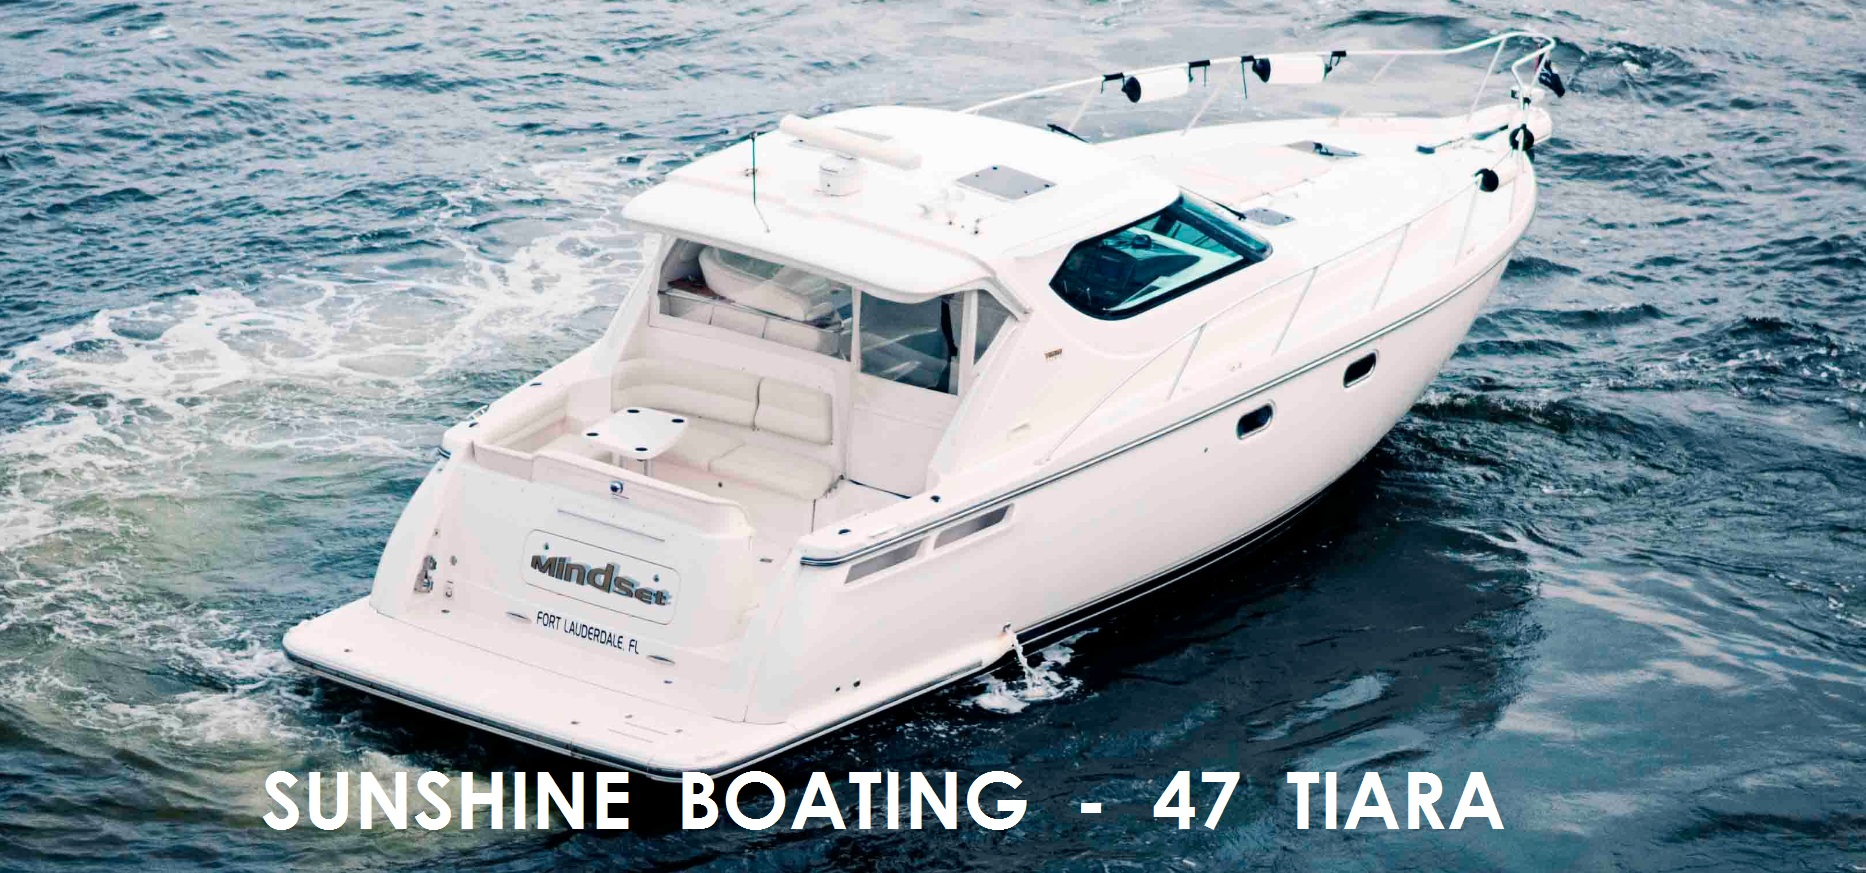 sunshine-boating-47-tiara-1